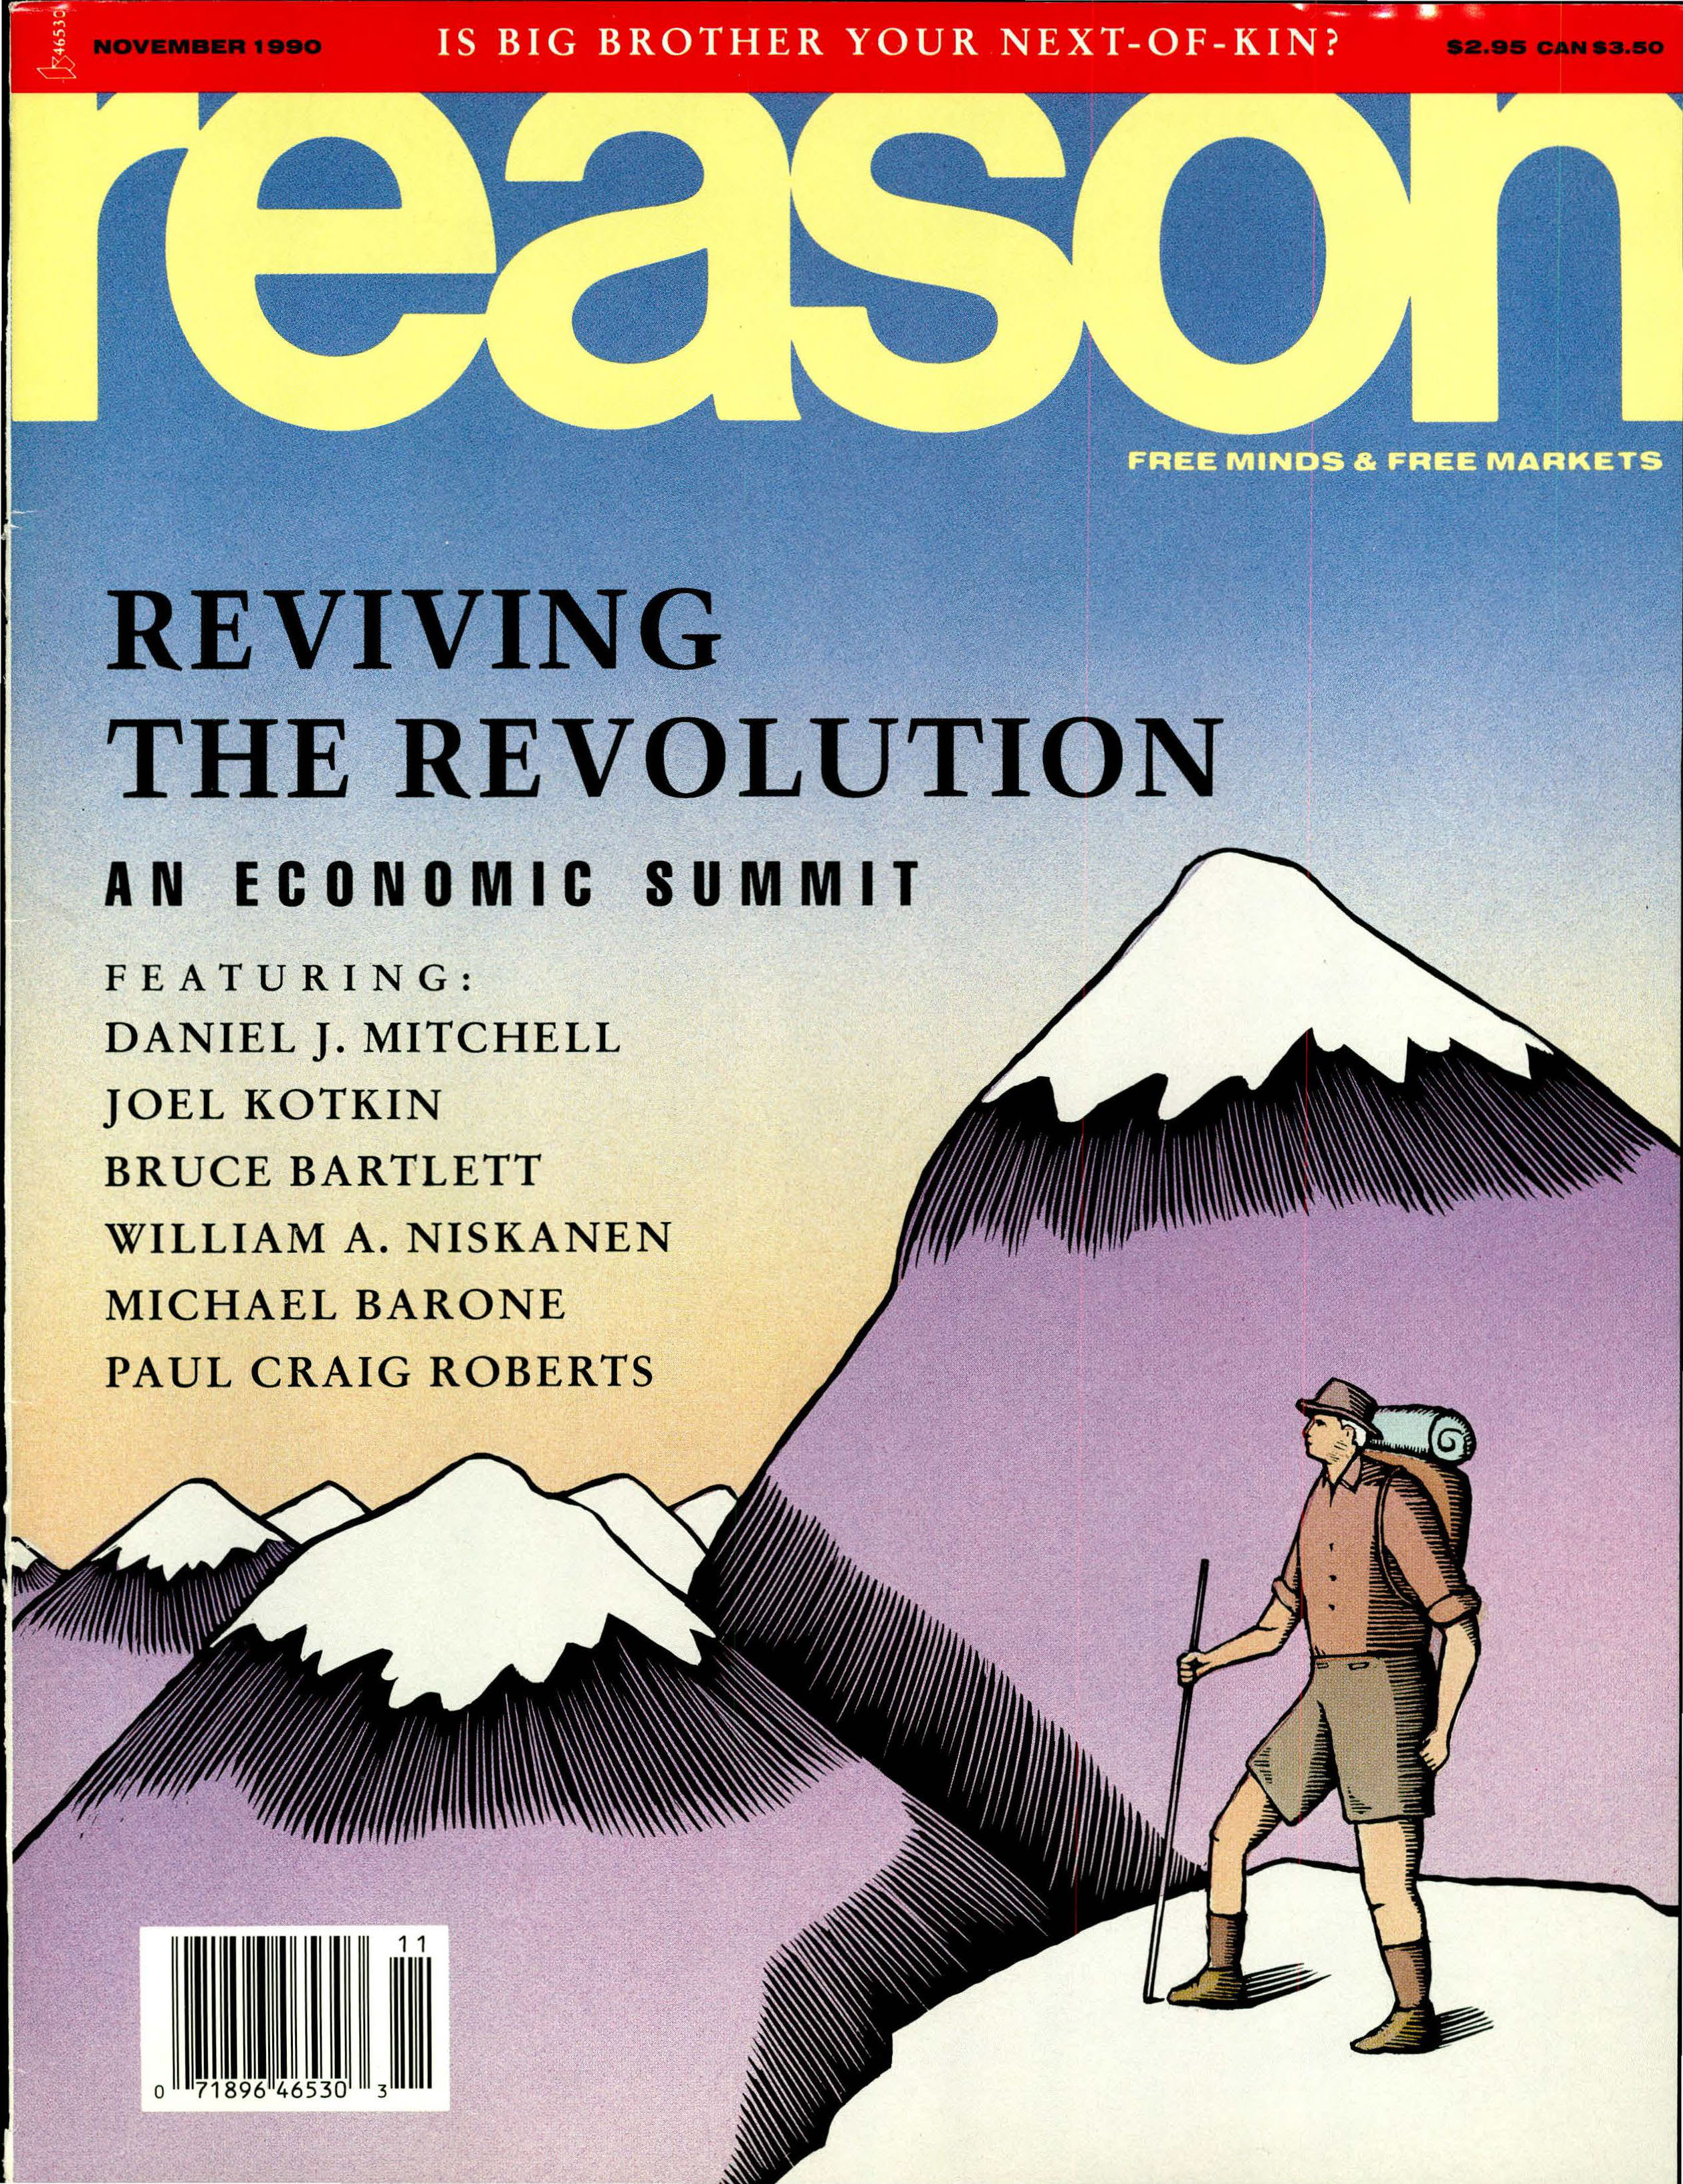 Reason Magazine, November 1990 cover image